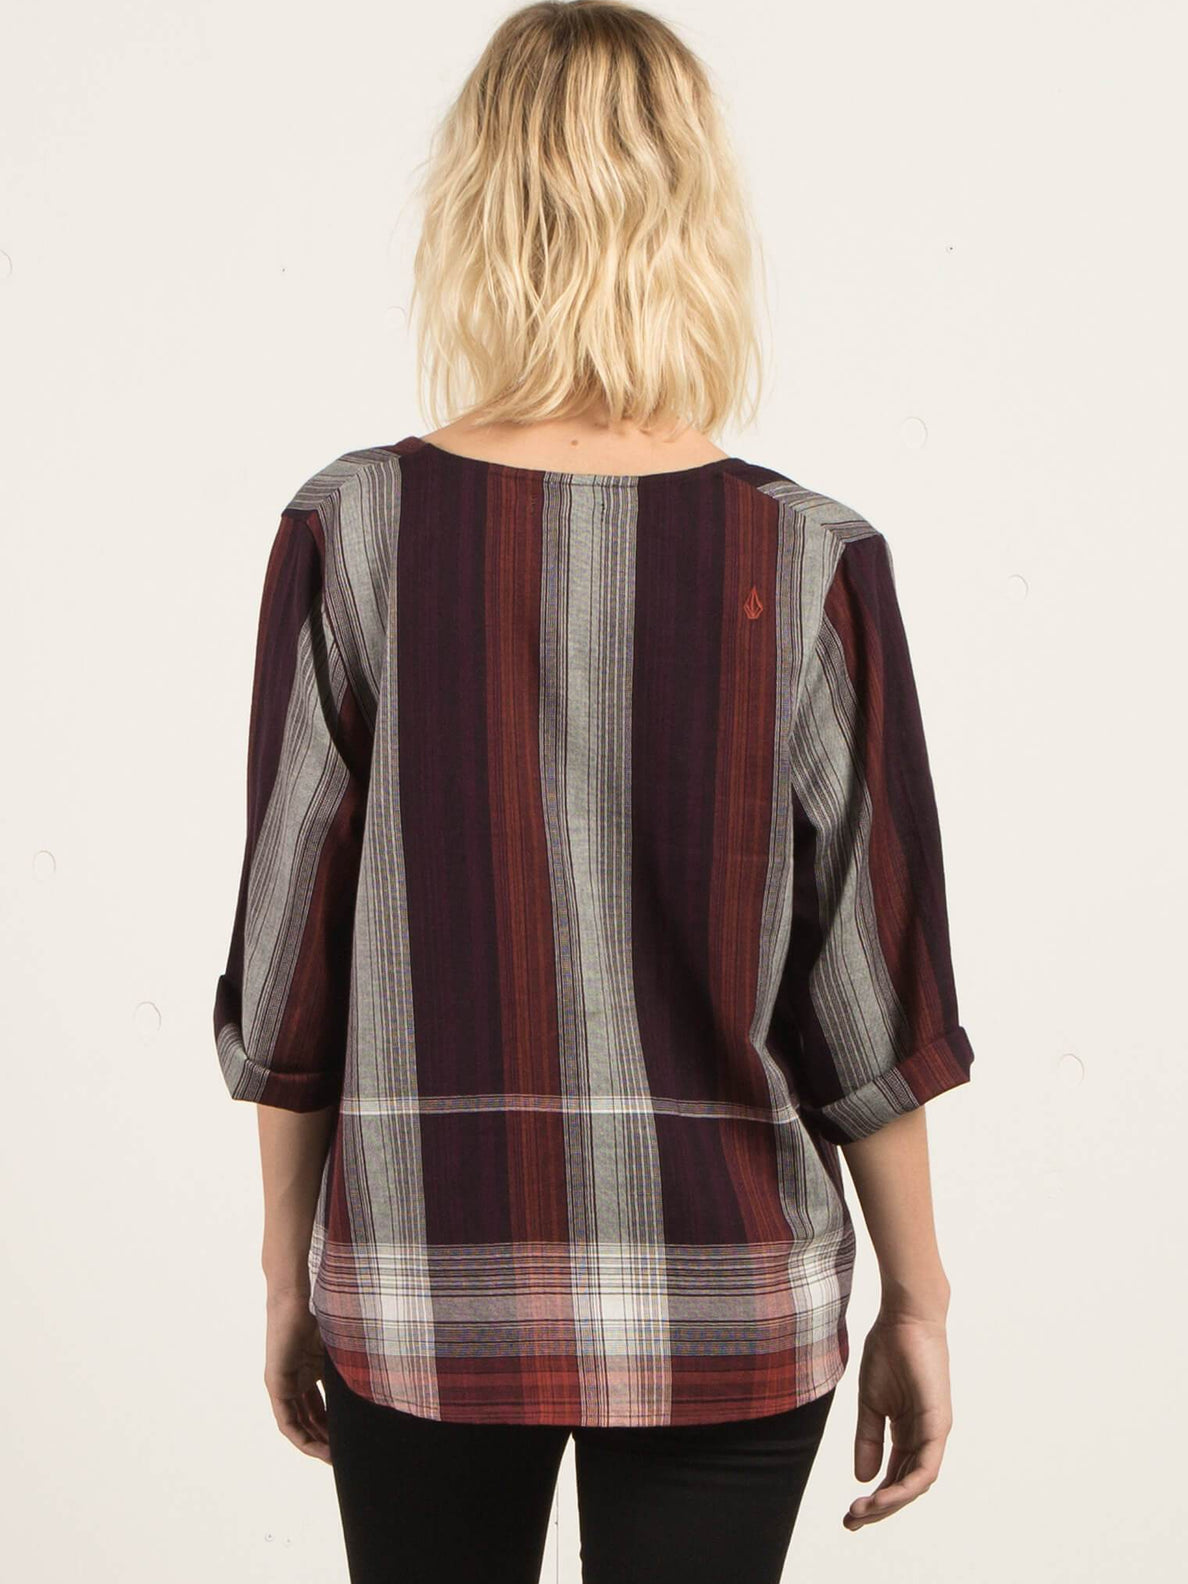 Well Plaid Throw - Plum